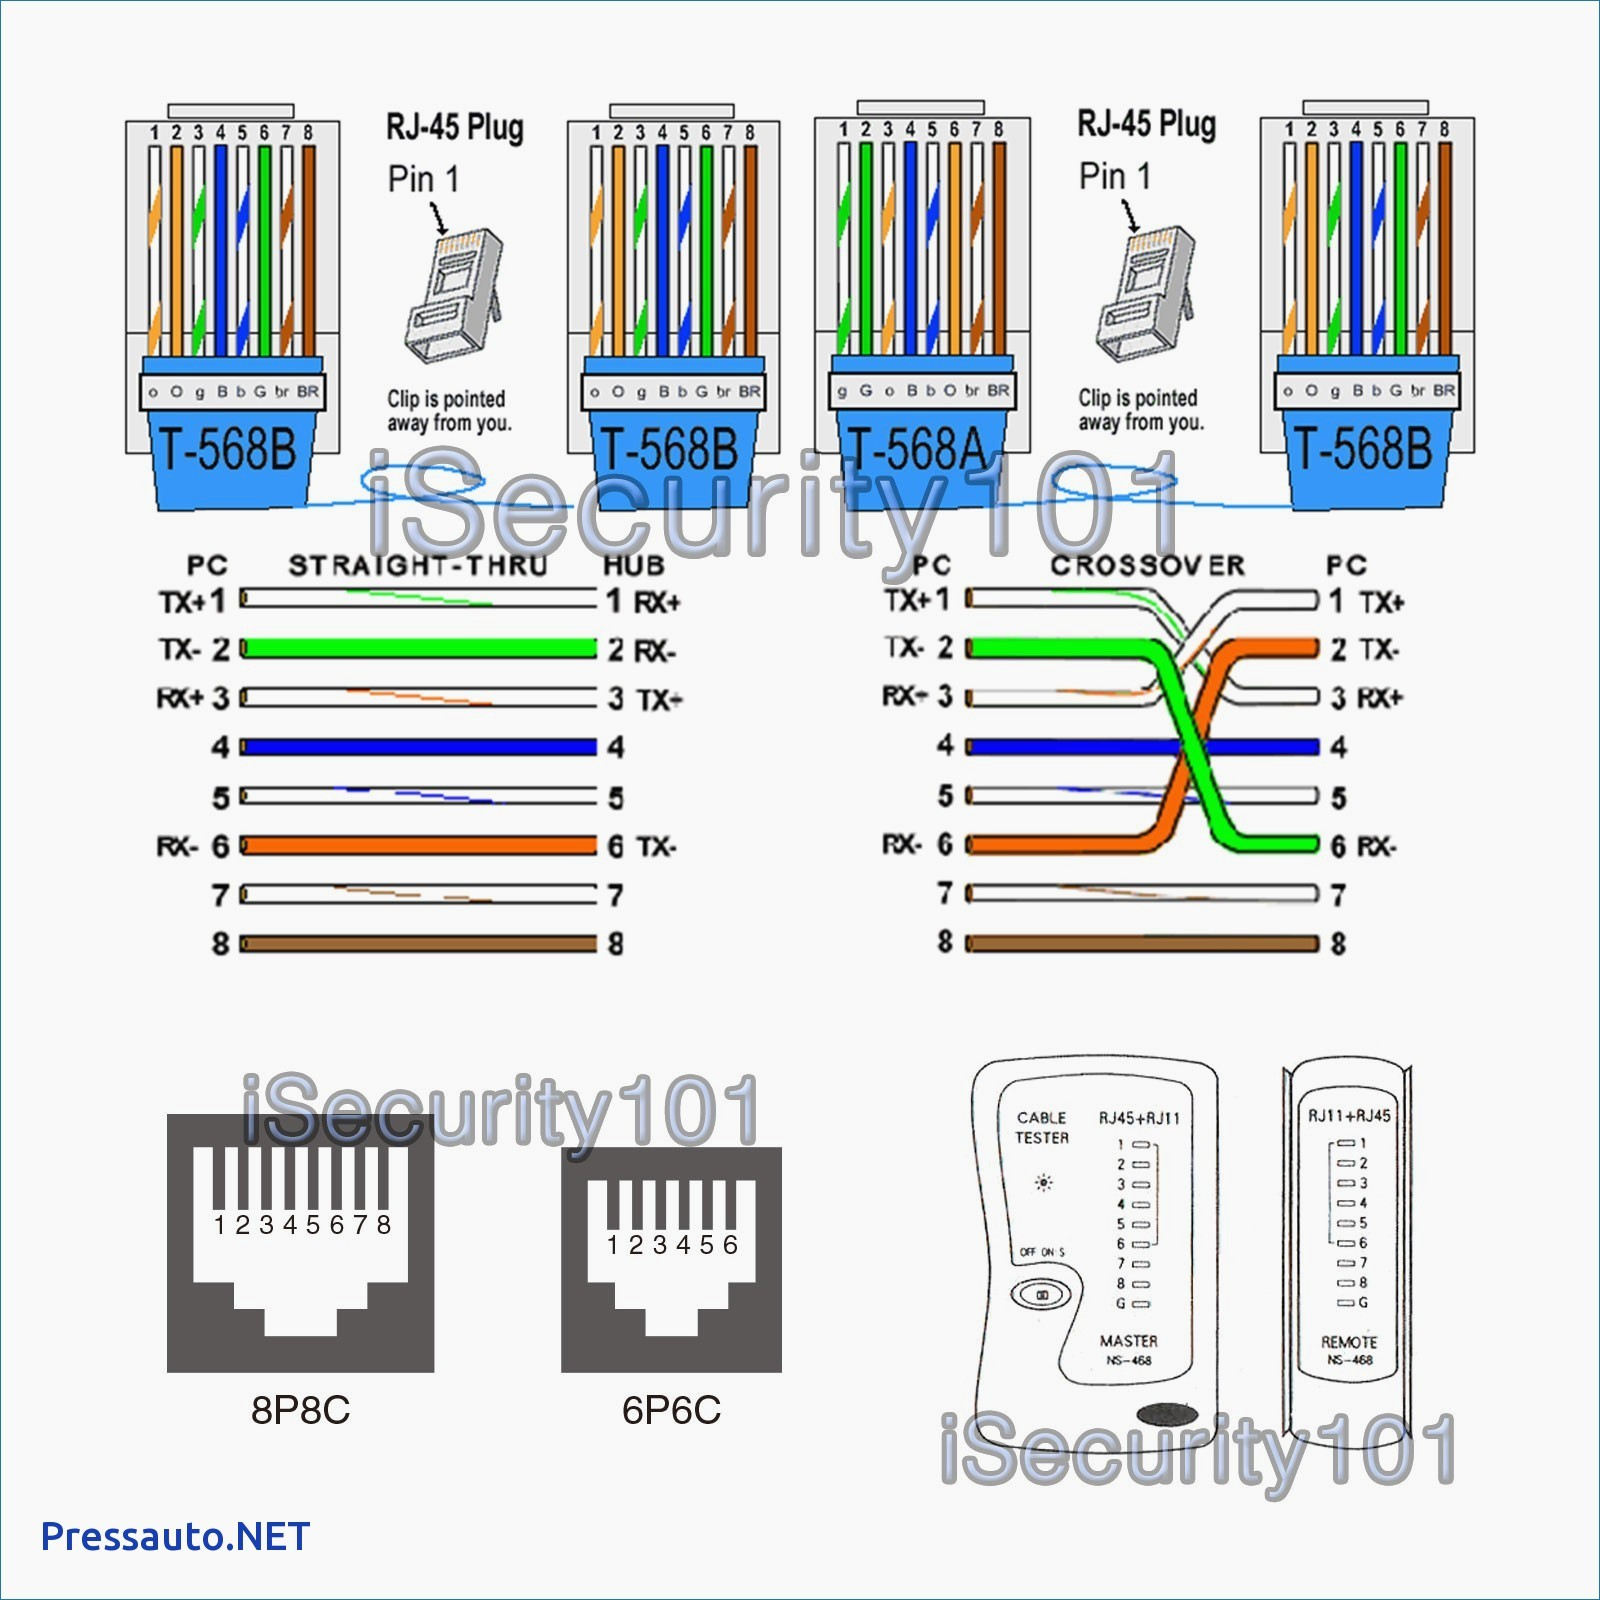 Cat 6 Wiring Diagram Rj45 Wiring Diagram Cat6 Wiring solutions Of Cat 6 Wiring Diagram